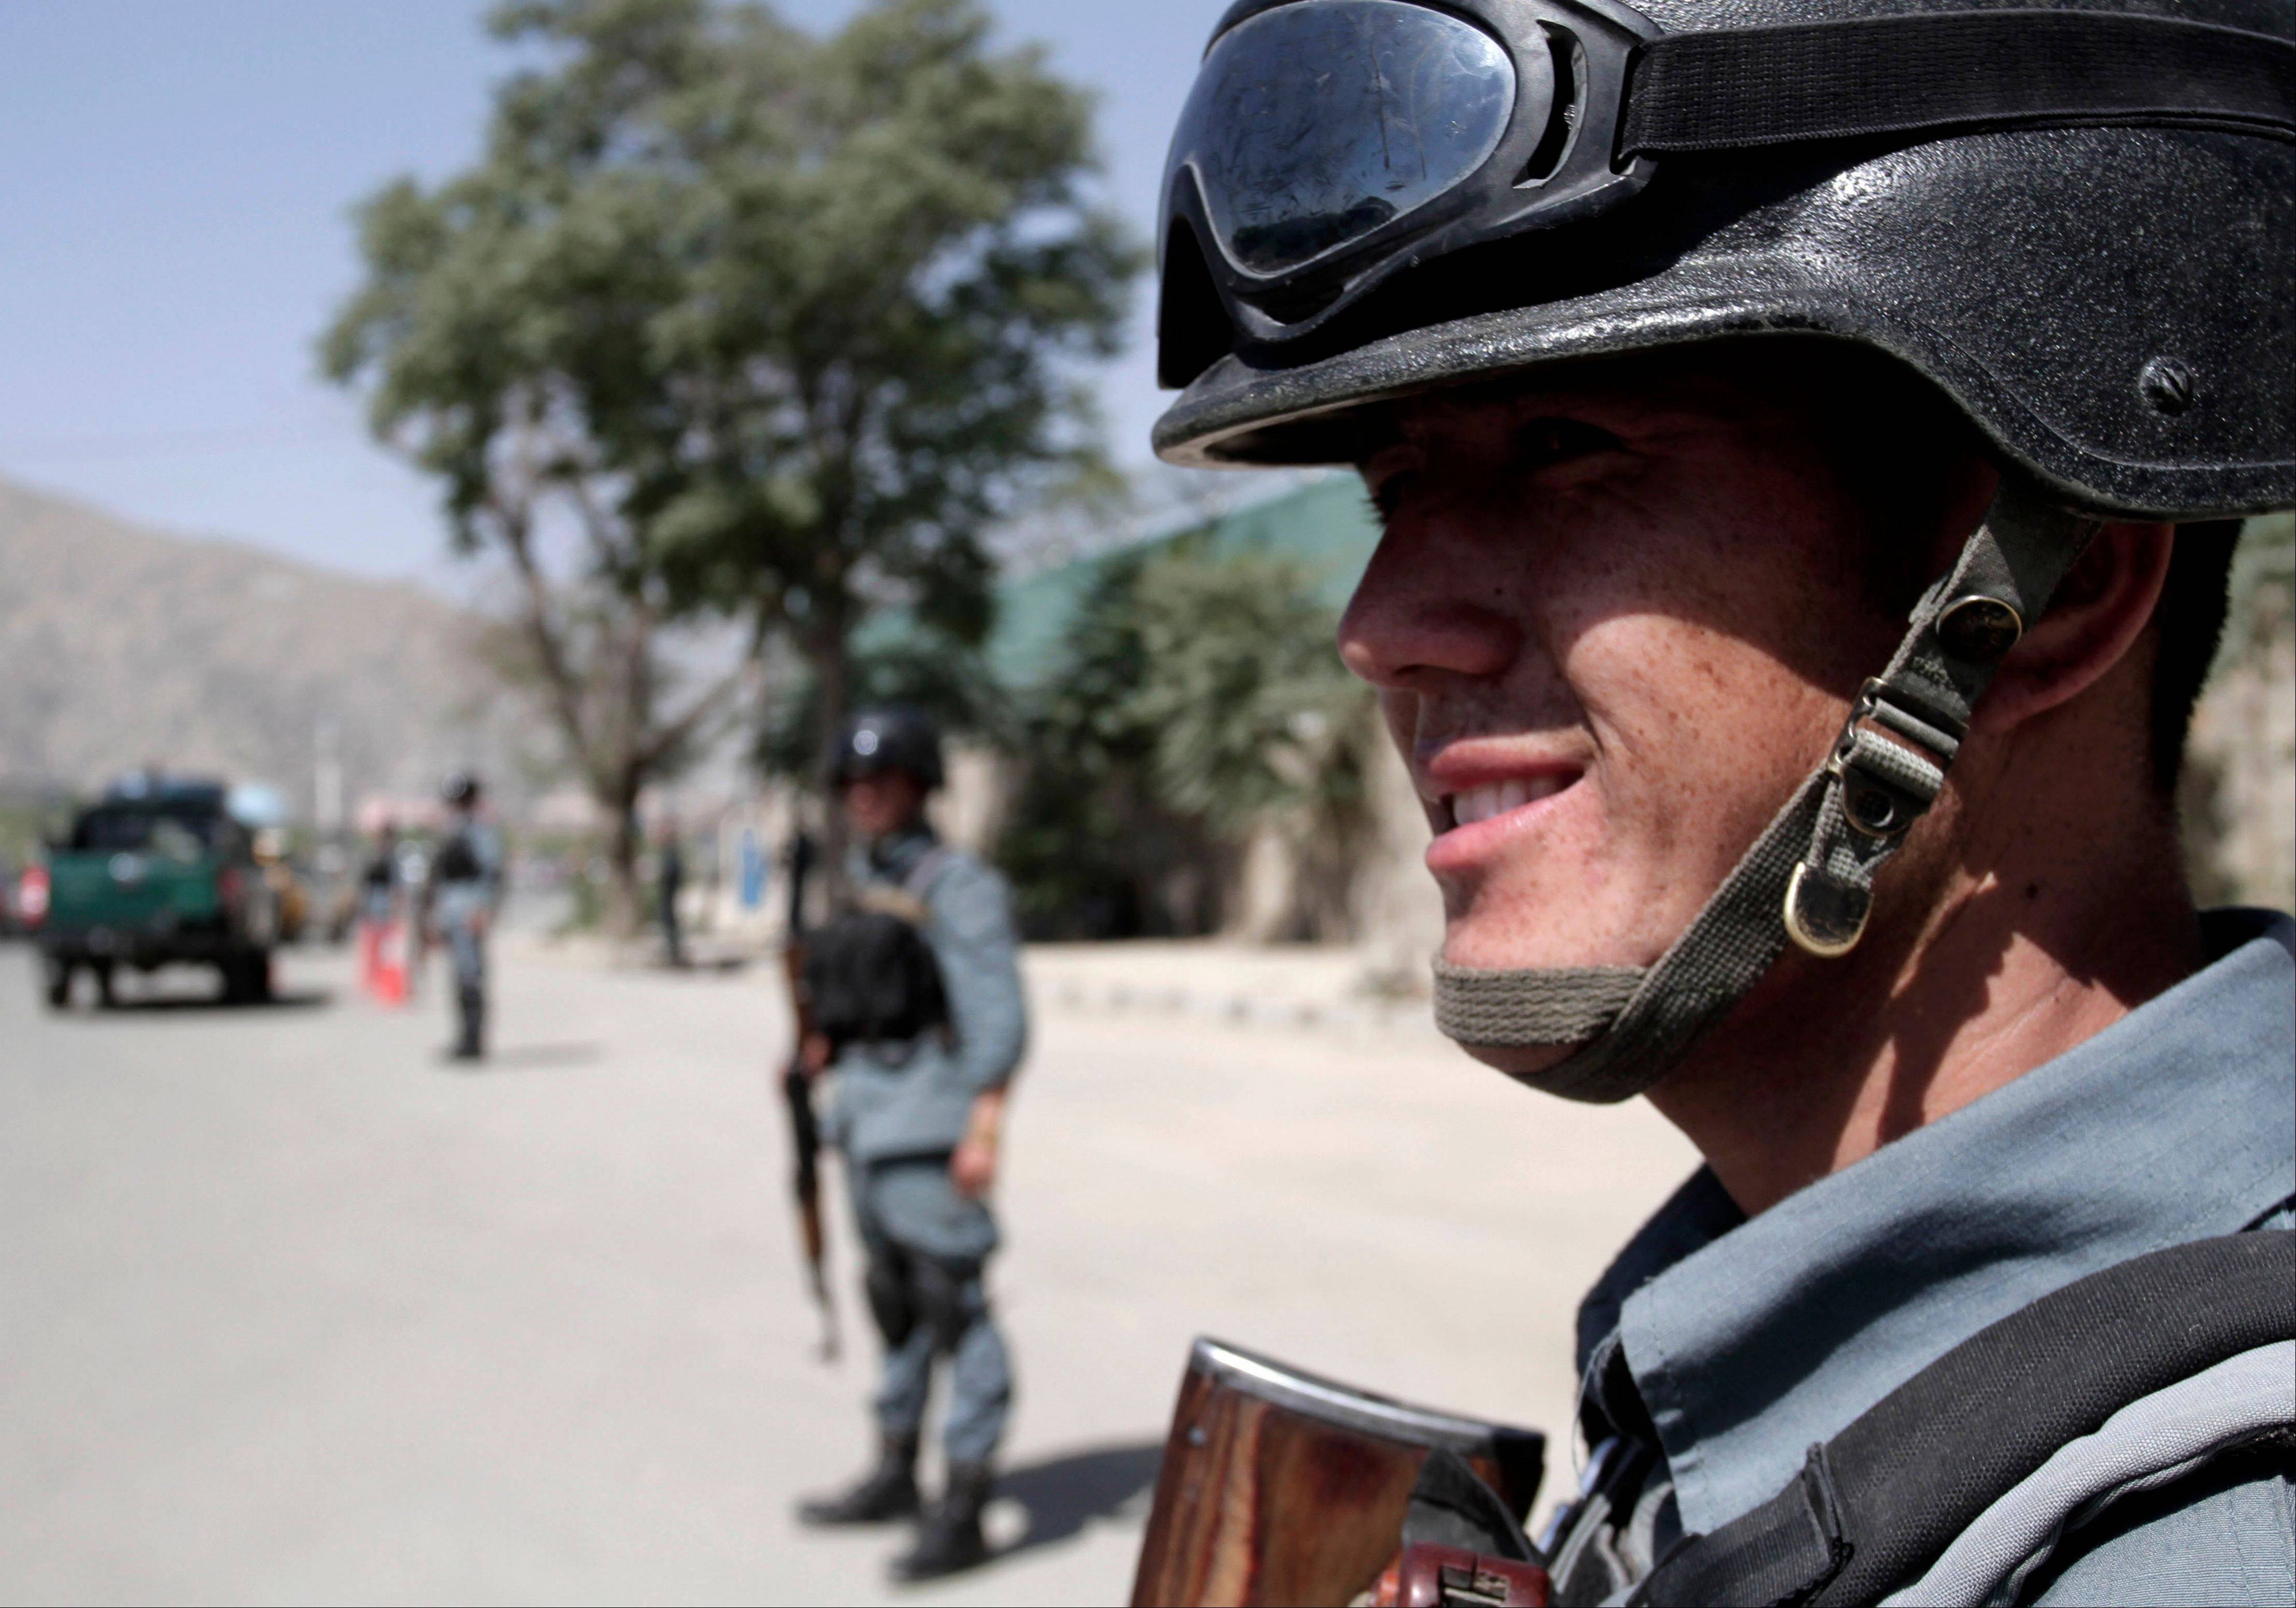 Afghan security forces stand guard near the entrance gate of the presidential palace in Kabul Tuesday. Suicide attackers blew up a car bomb and battled security forces outside the presidential palace Tuesday after infiltrating one of the most secure areas of the capital.